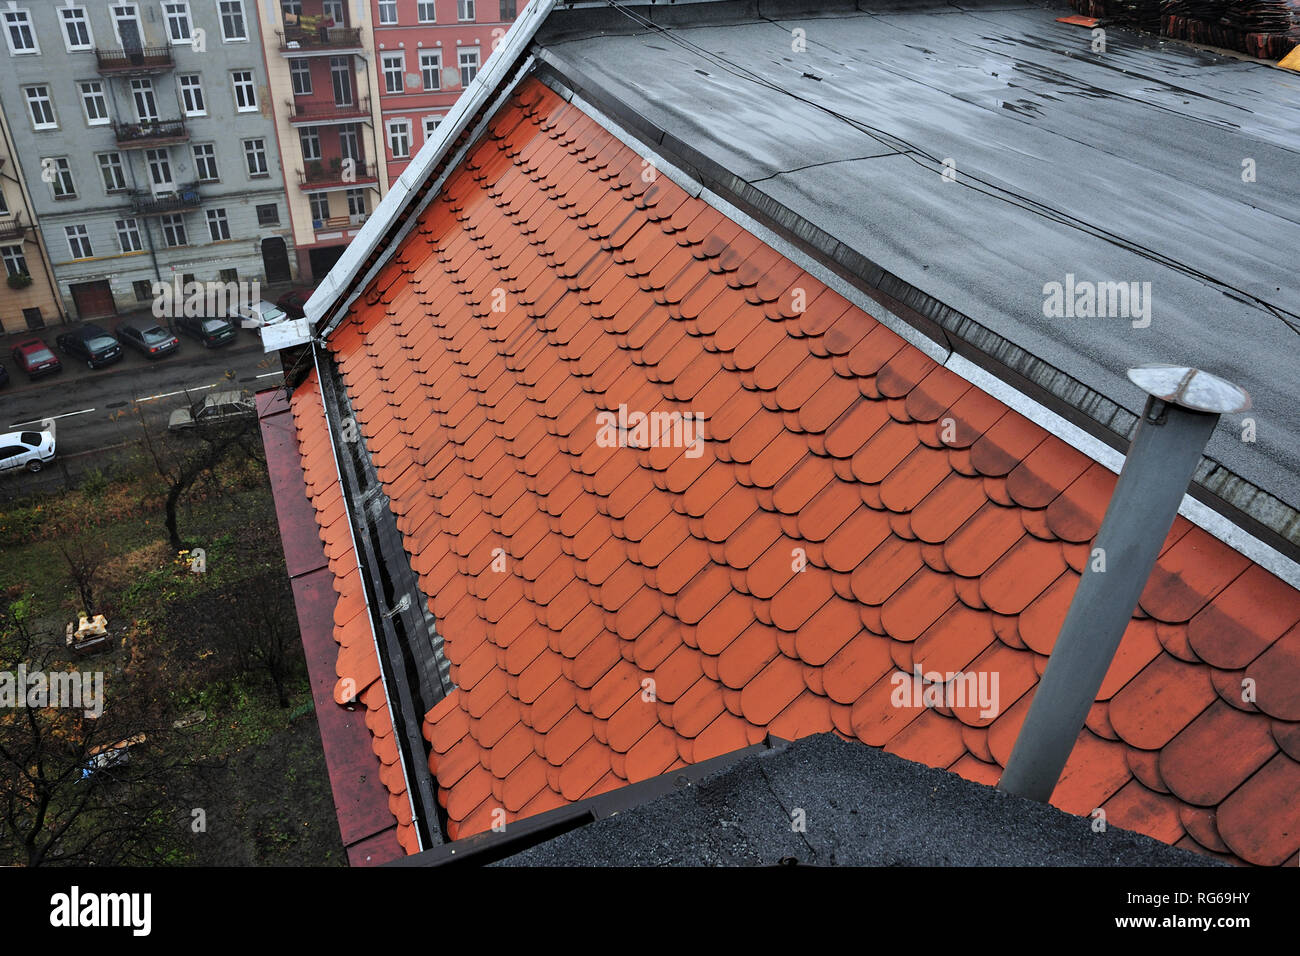 roof, house, home, gutter, roof tiles, precipitation, snow, danger, ice, conditions, weather, cold, winter, atmospheric conditions, city, old, - Stock Image